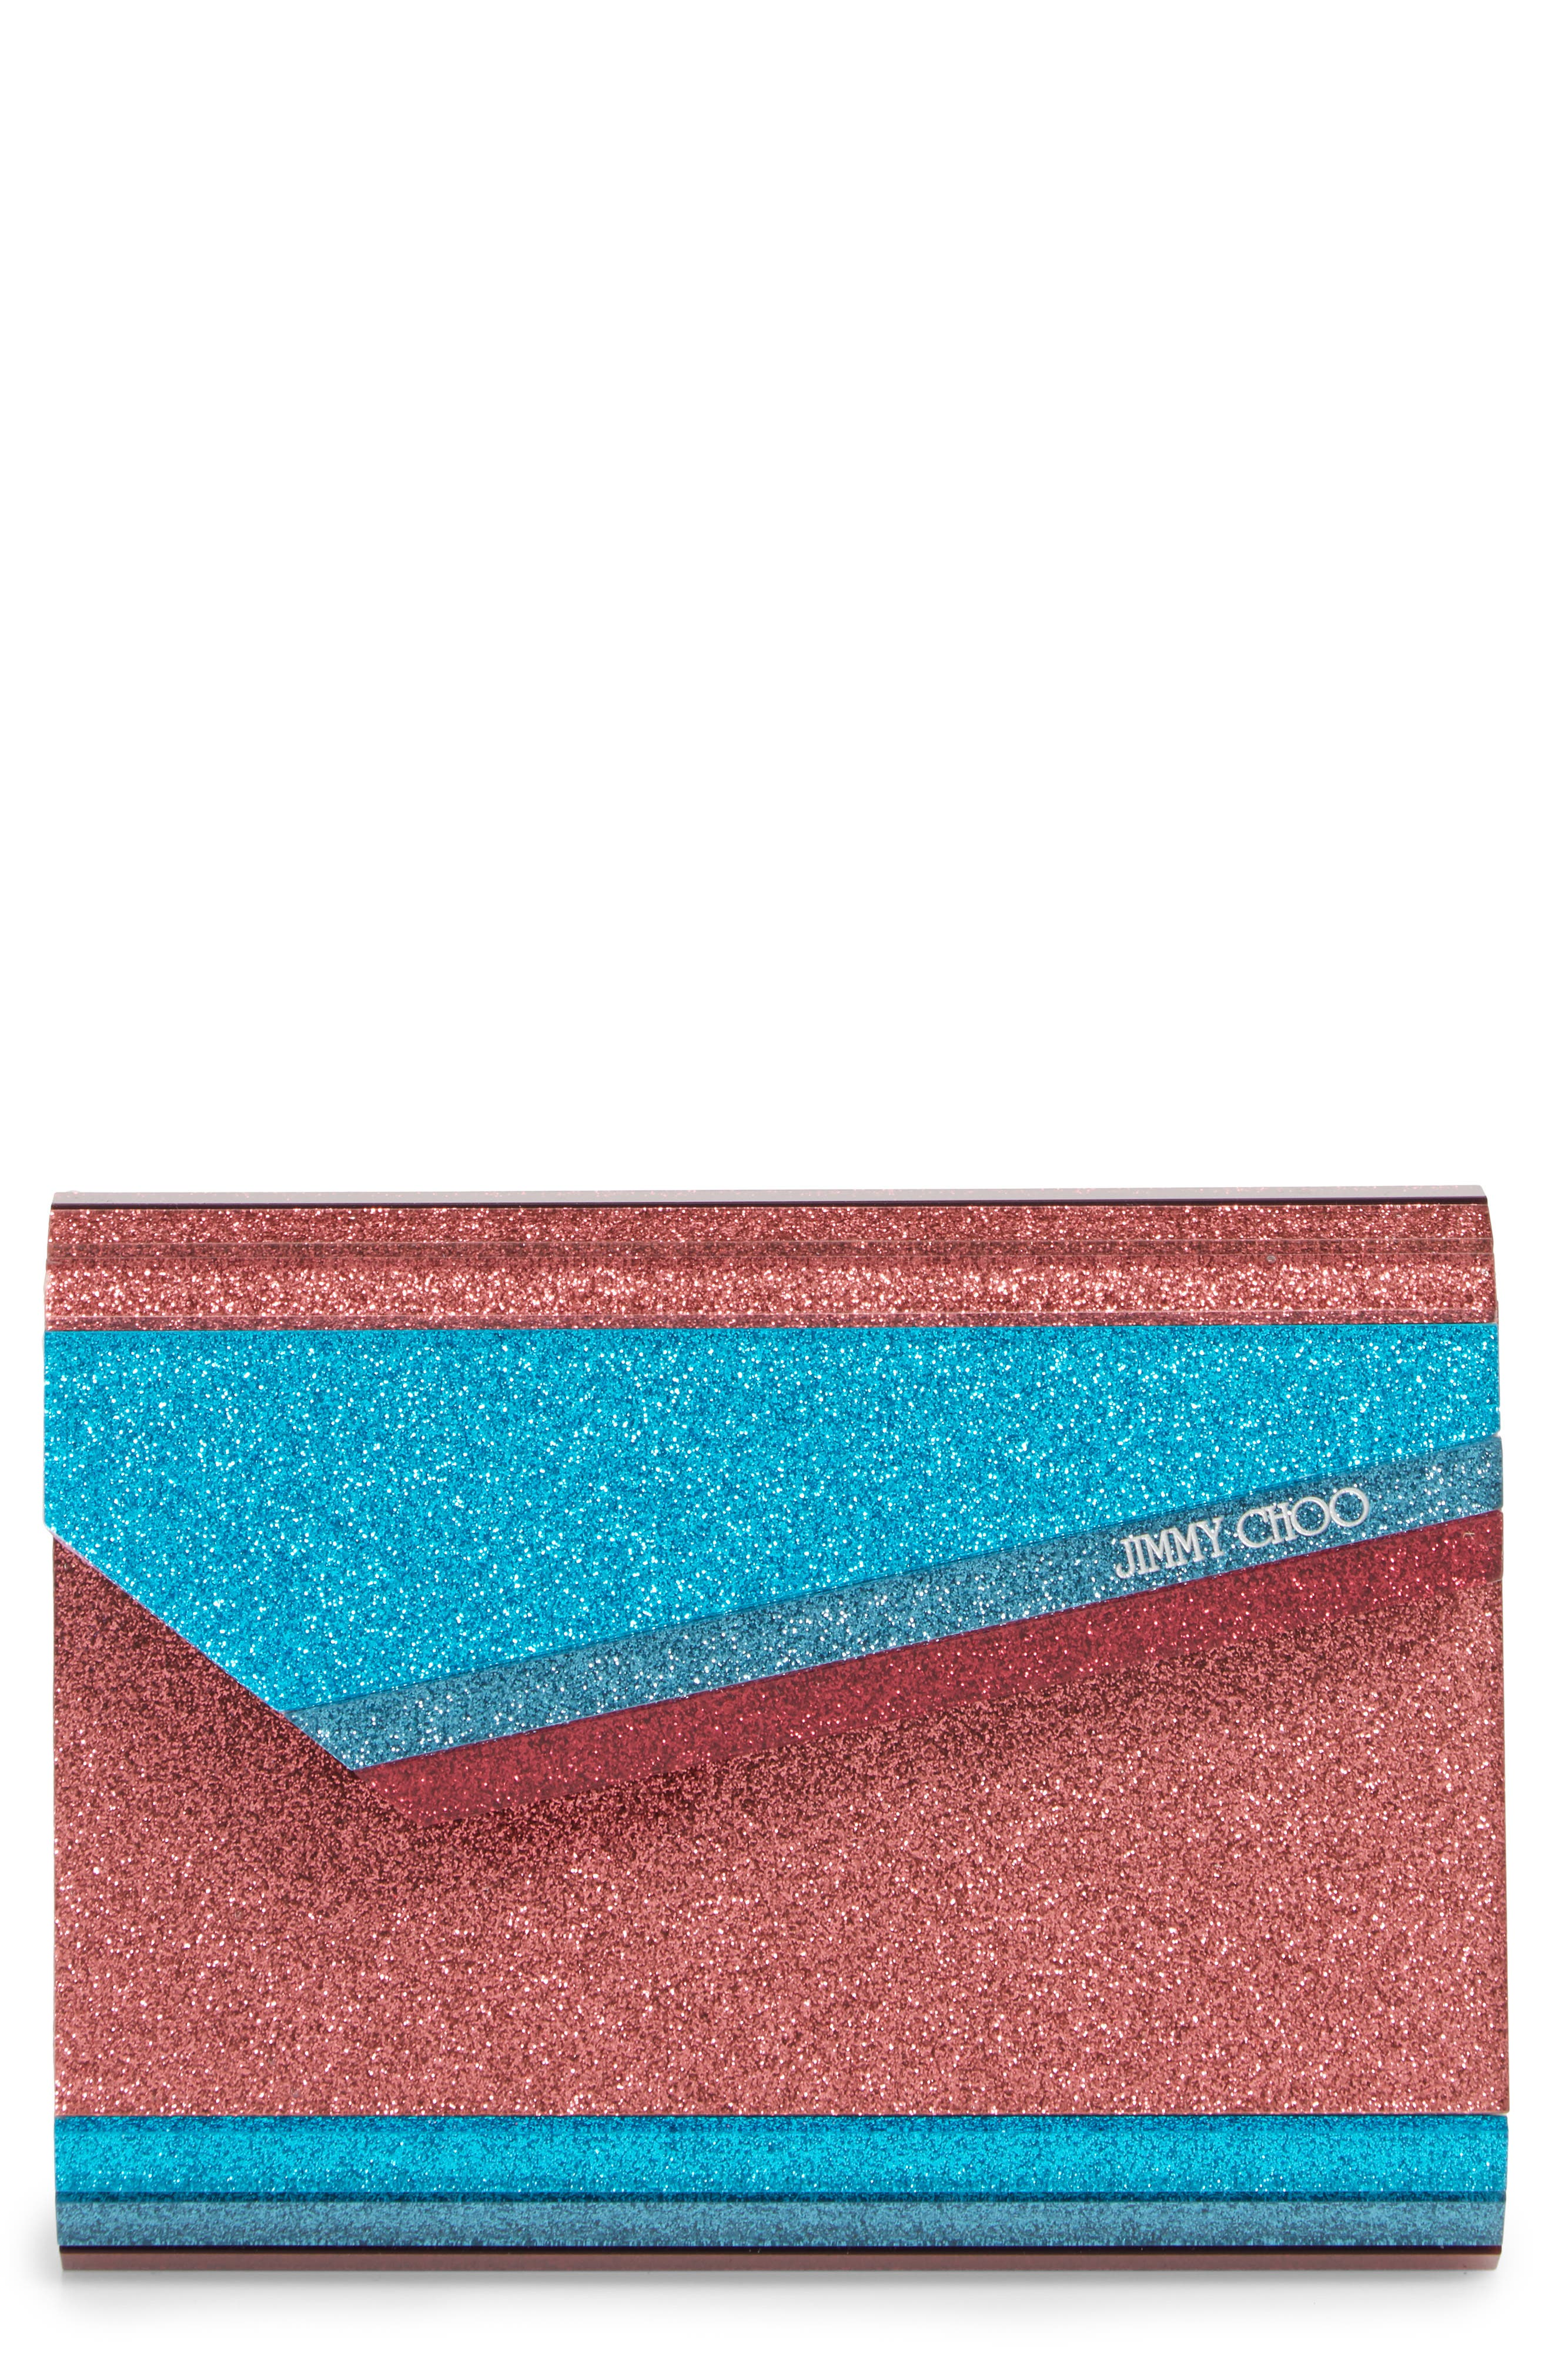 JIMMY CHOO,                             Candy Colorblock Glitter Clutch,                             Main thumbnail 1, color,                             RASPBERRY MIX